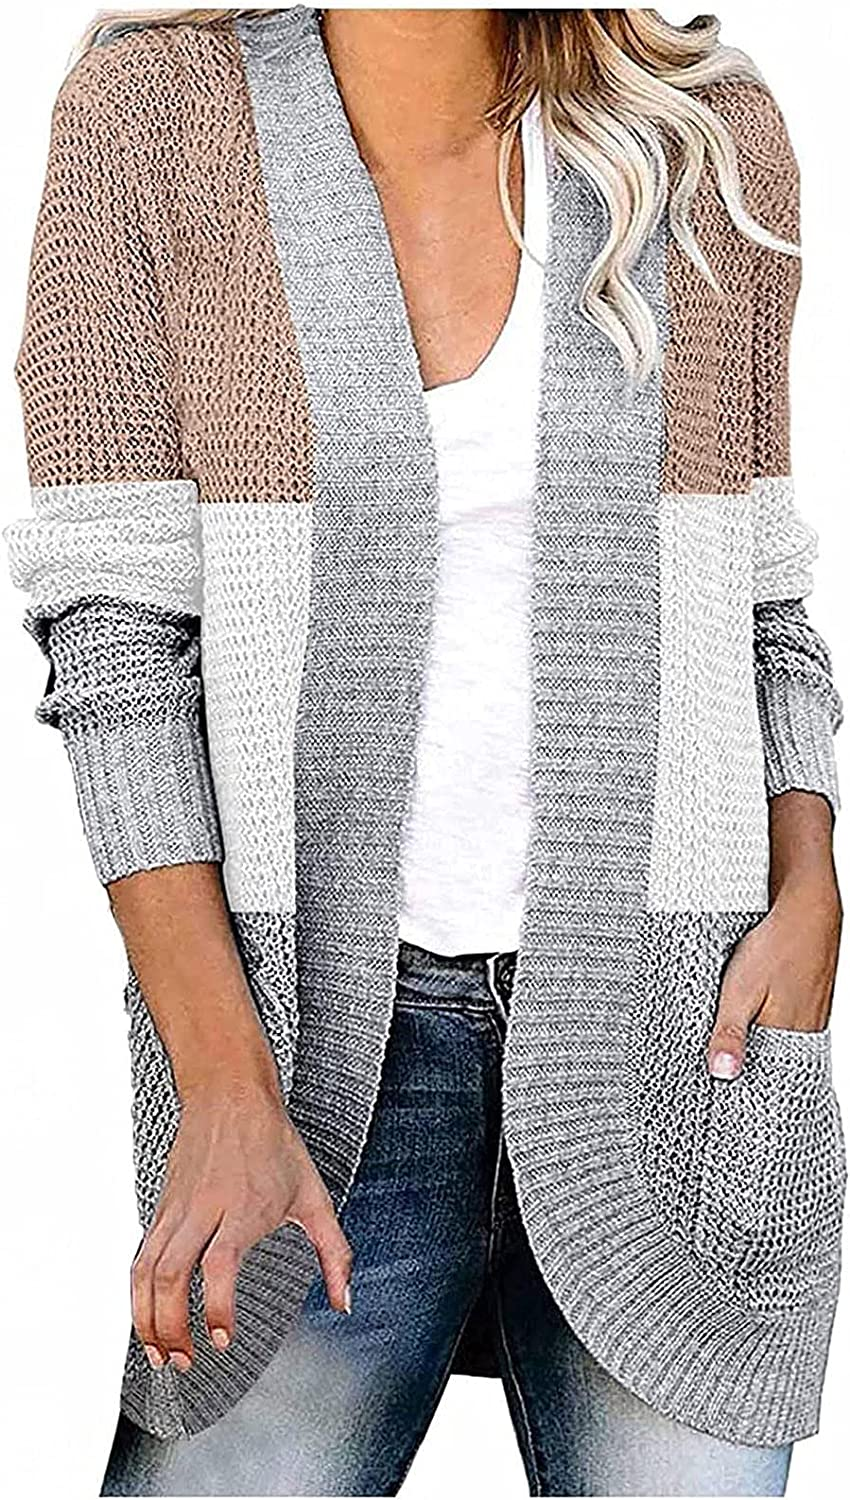 RFNIU Womens Boho Cardigan Sweater Fall Color Block Long Sleeve Open Front outerwear With Pockets Casual Knit Kimono Tops